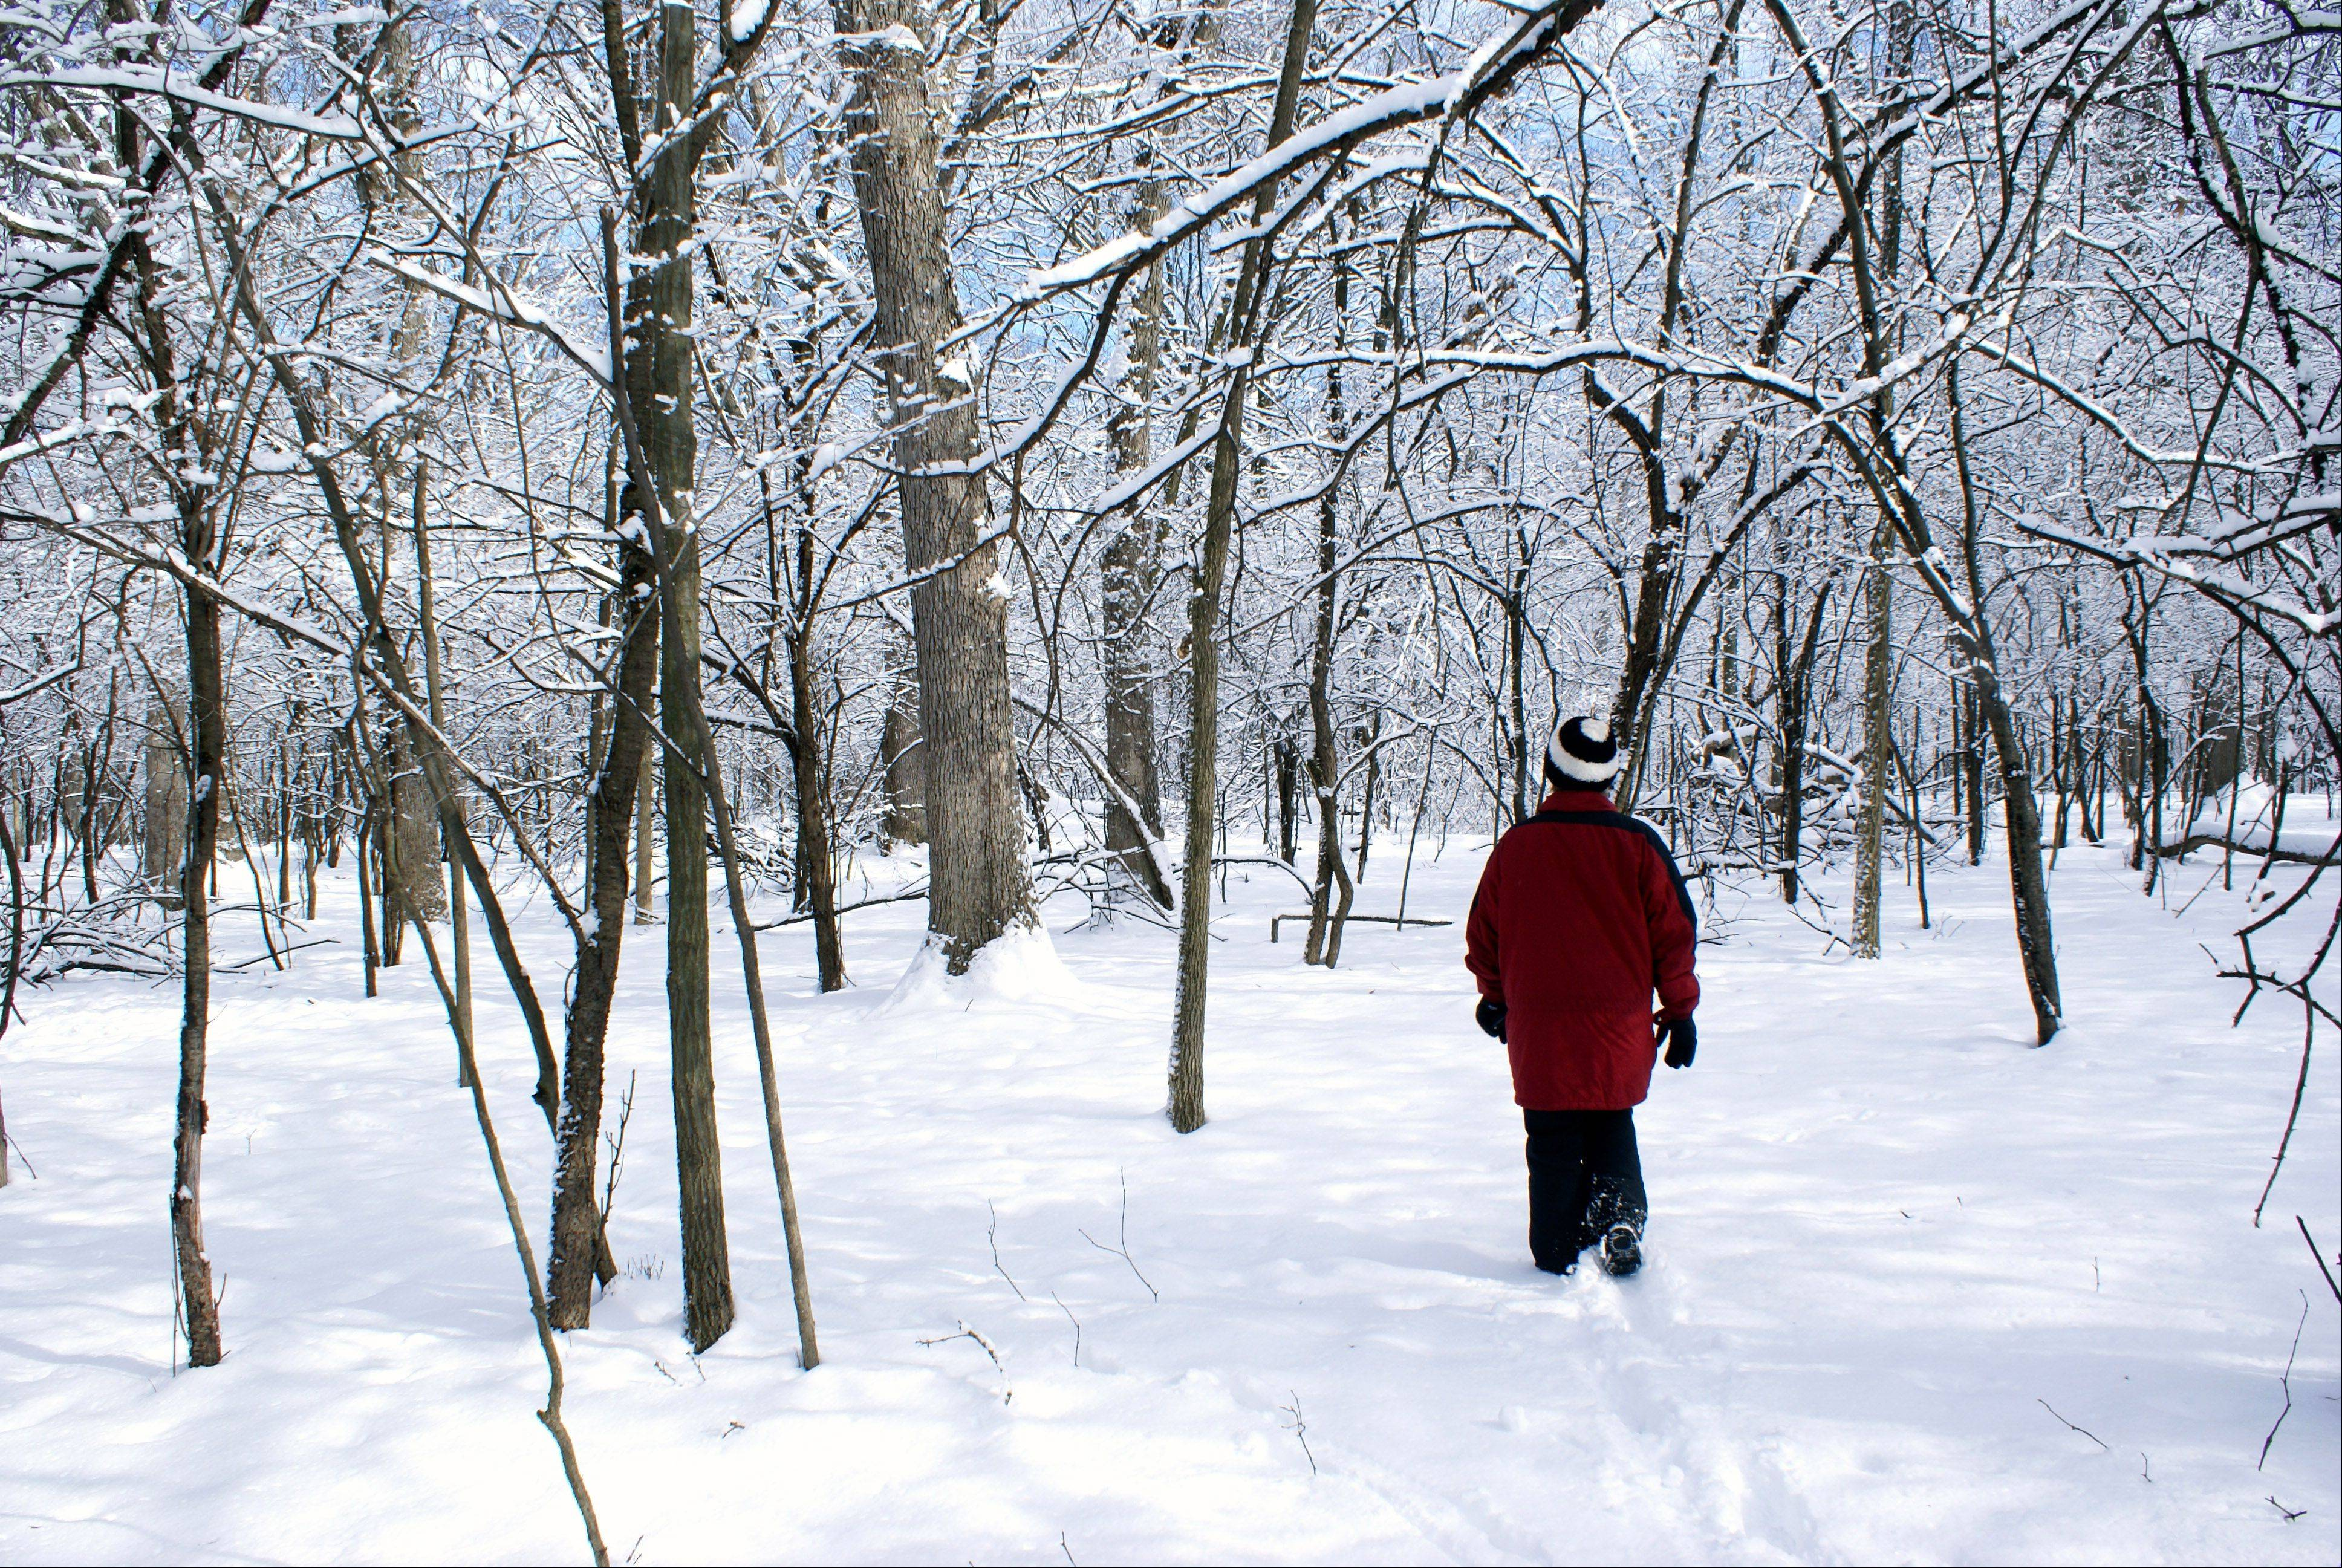 My wife and I were taking a walk in the woods just after the last heavy snowfall last month. Her red jacket really pops out with all the snow.